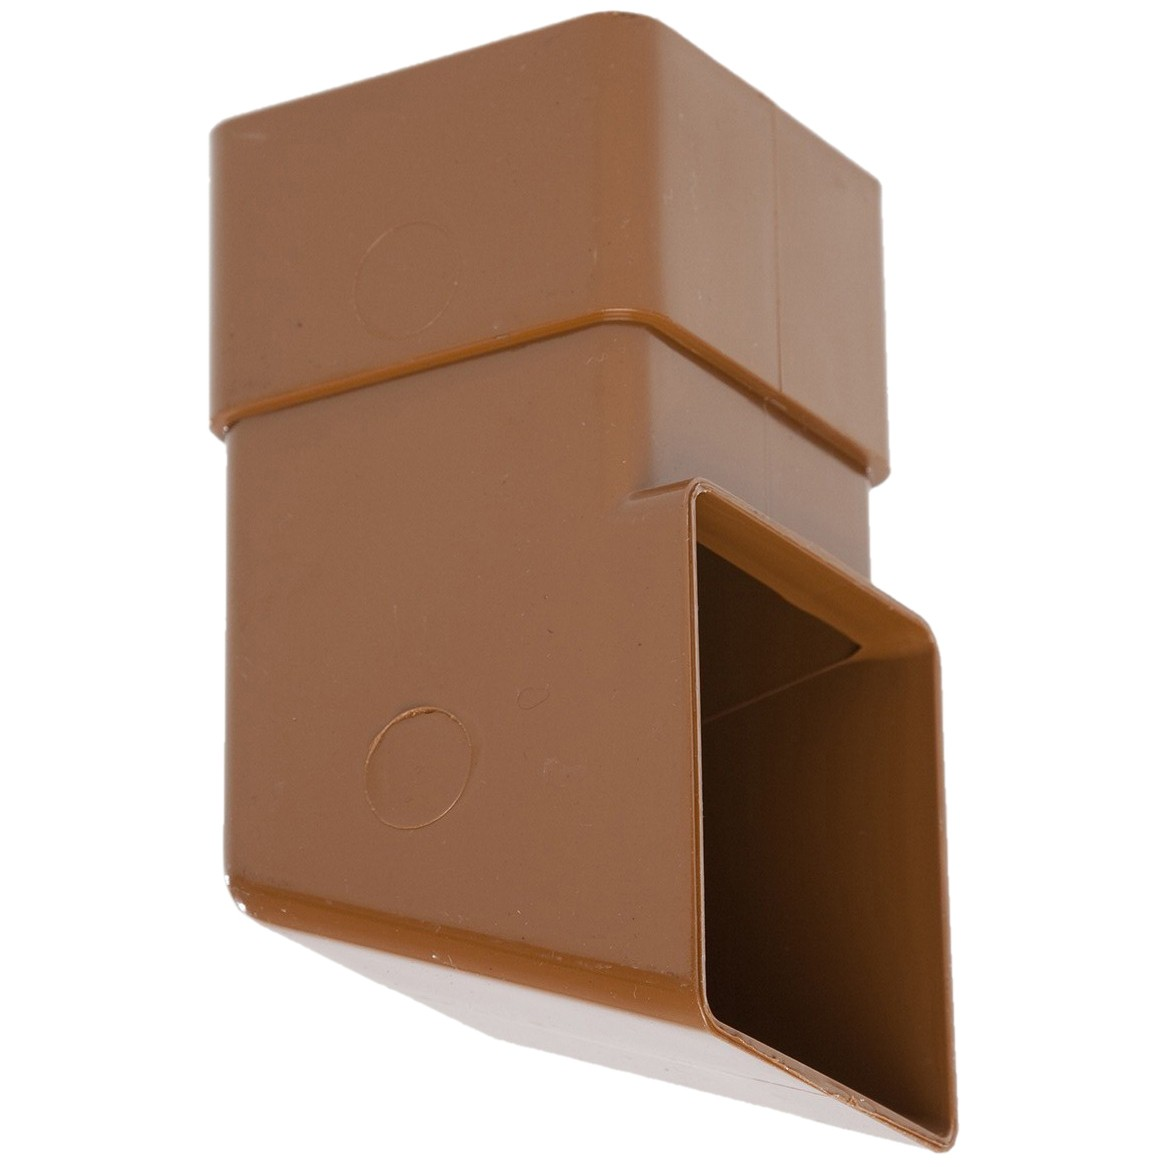 Polypipe 65mm Square Down Pipe Shoe - Caramel